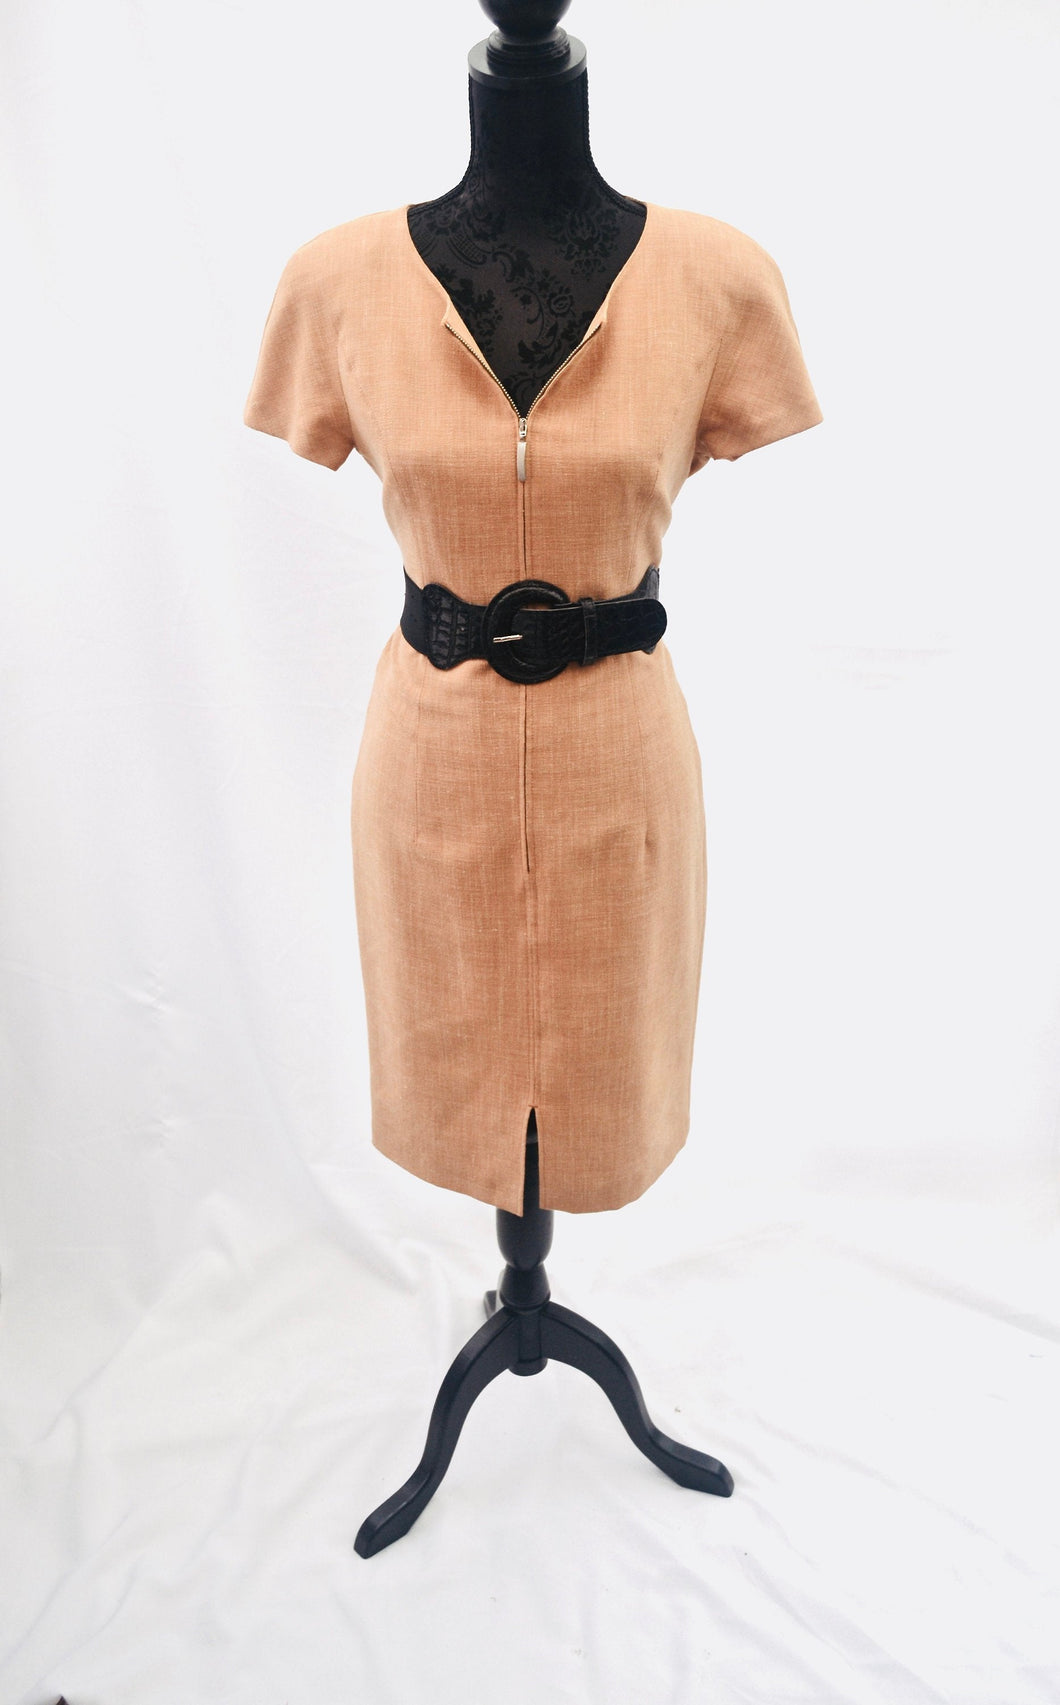 1980s zip up dress, wiggle dress by Madeleine, light peachy brown dress, Est UK size 12